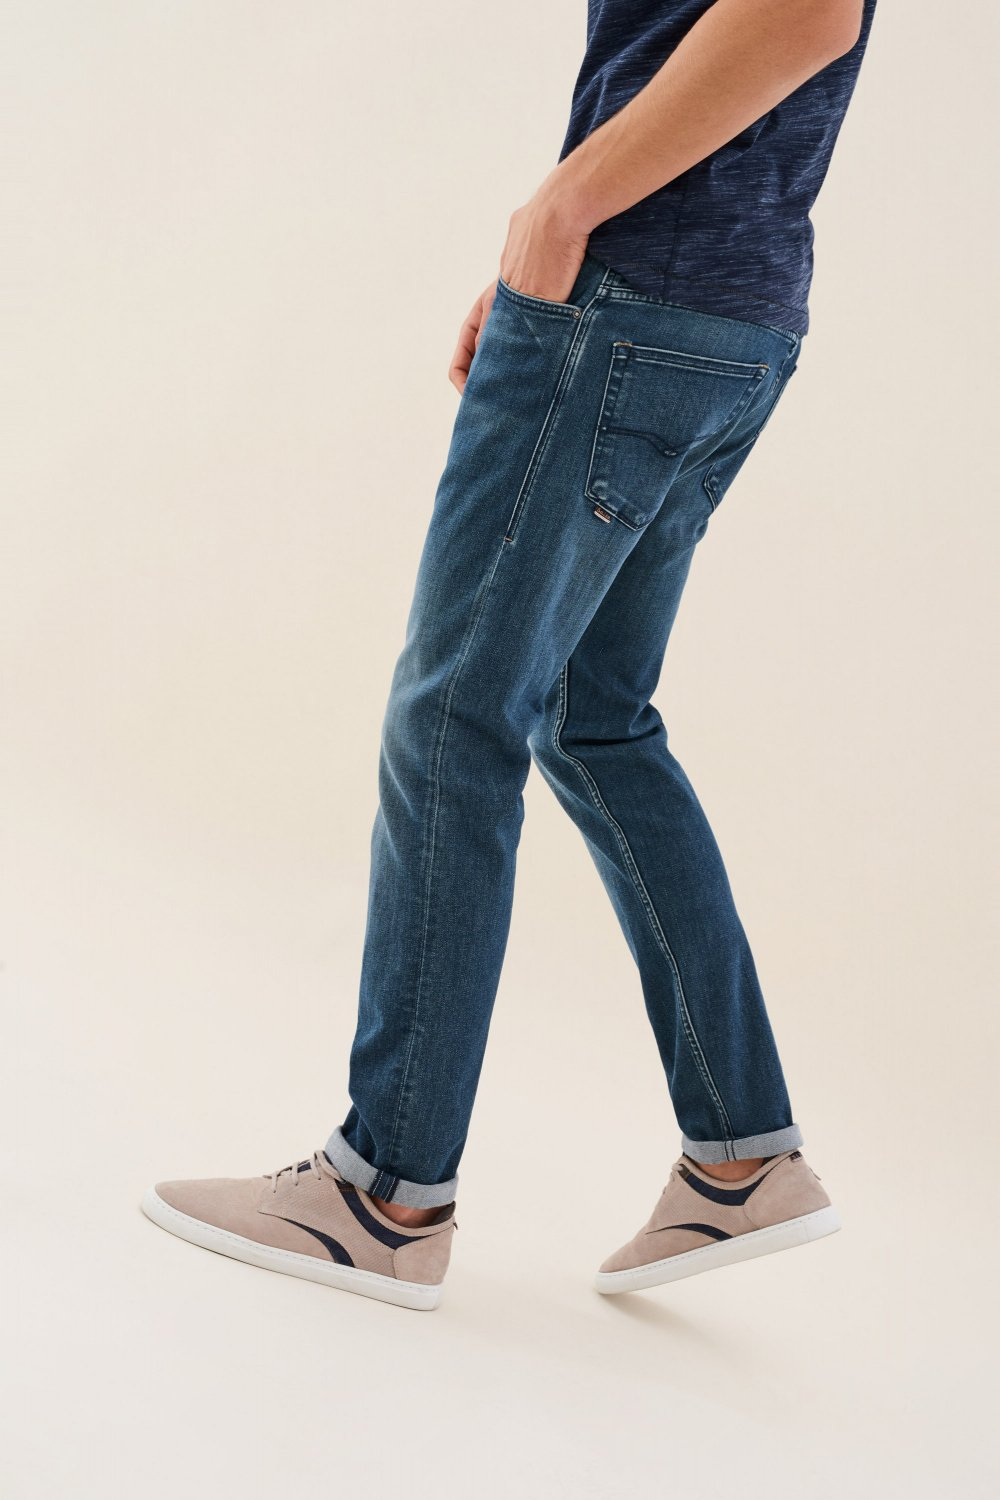 Jeans Slender slim carrot en warm denim - Salsa